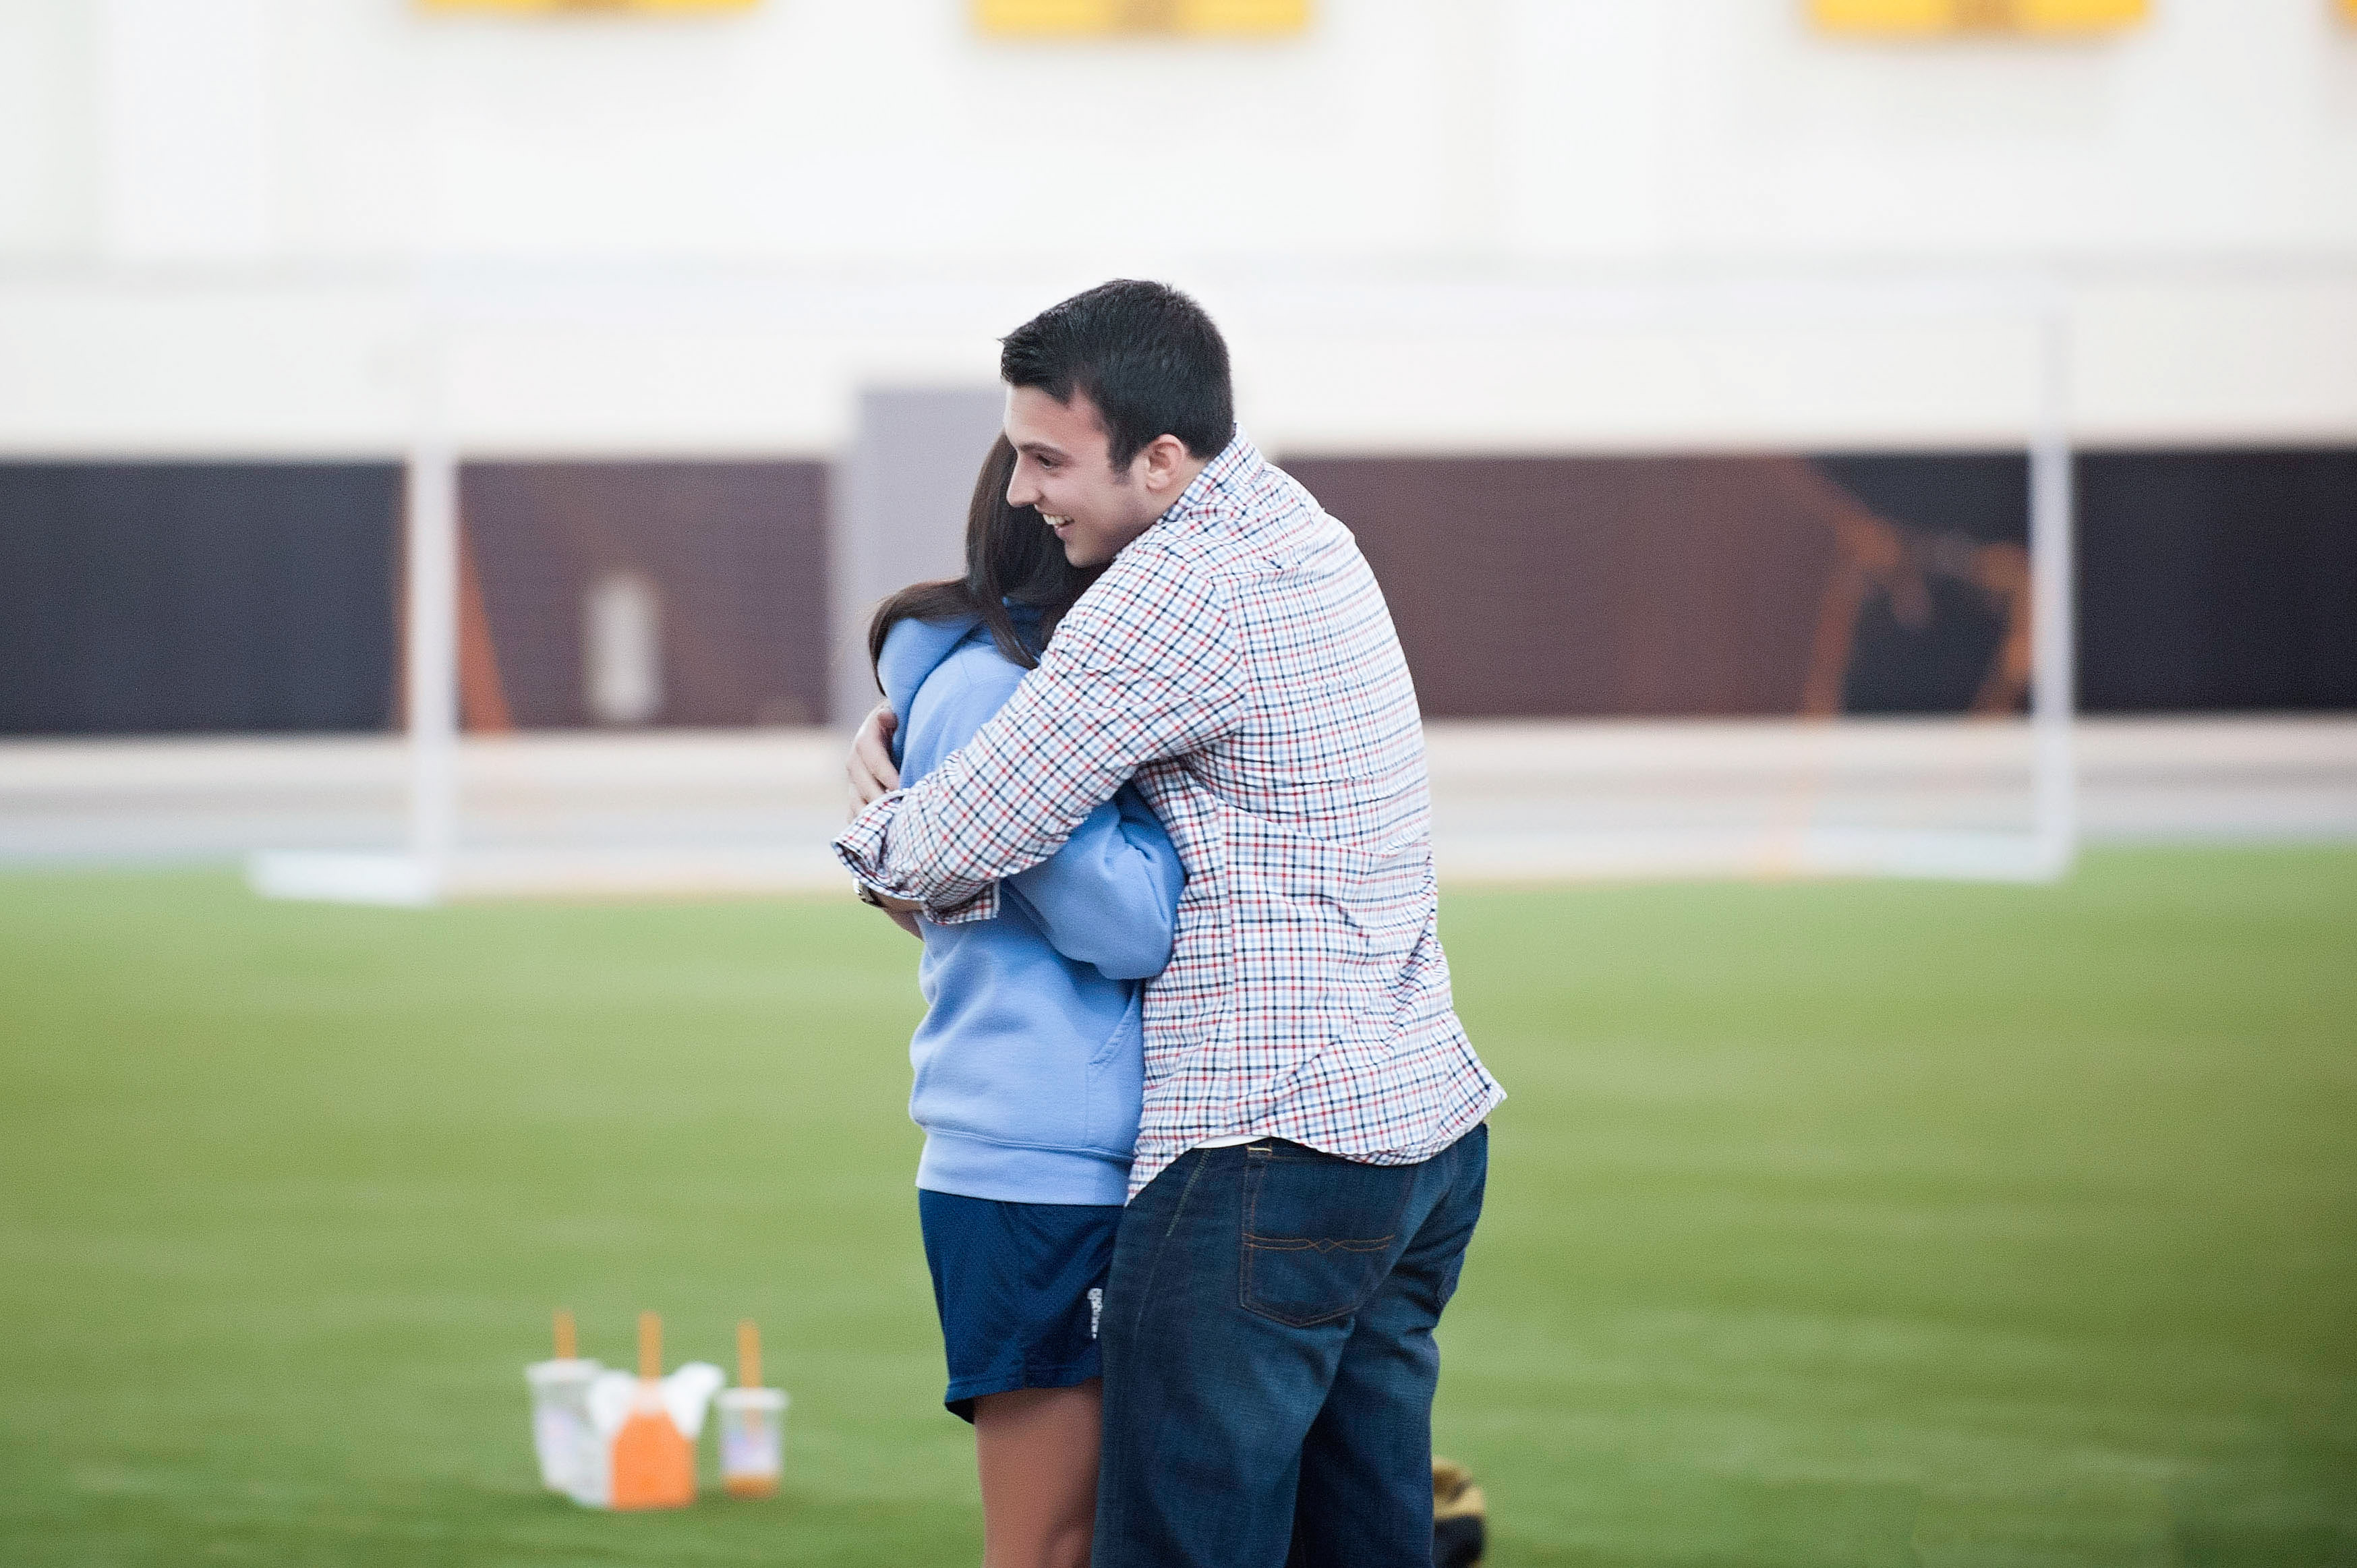 Image 12 of Marriage Proposal at Lacrosse Practice